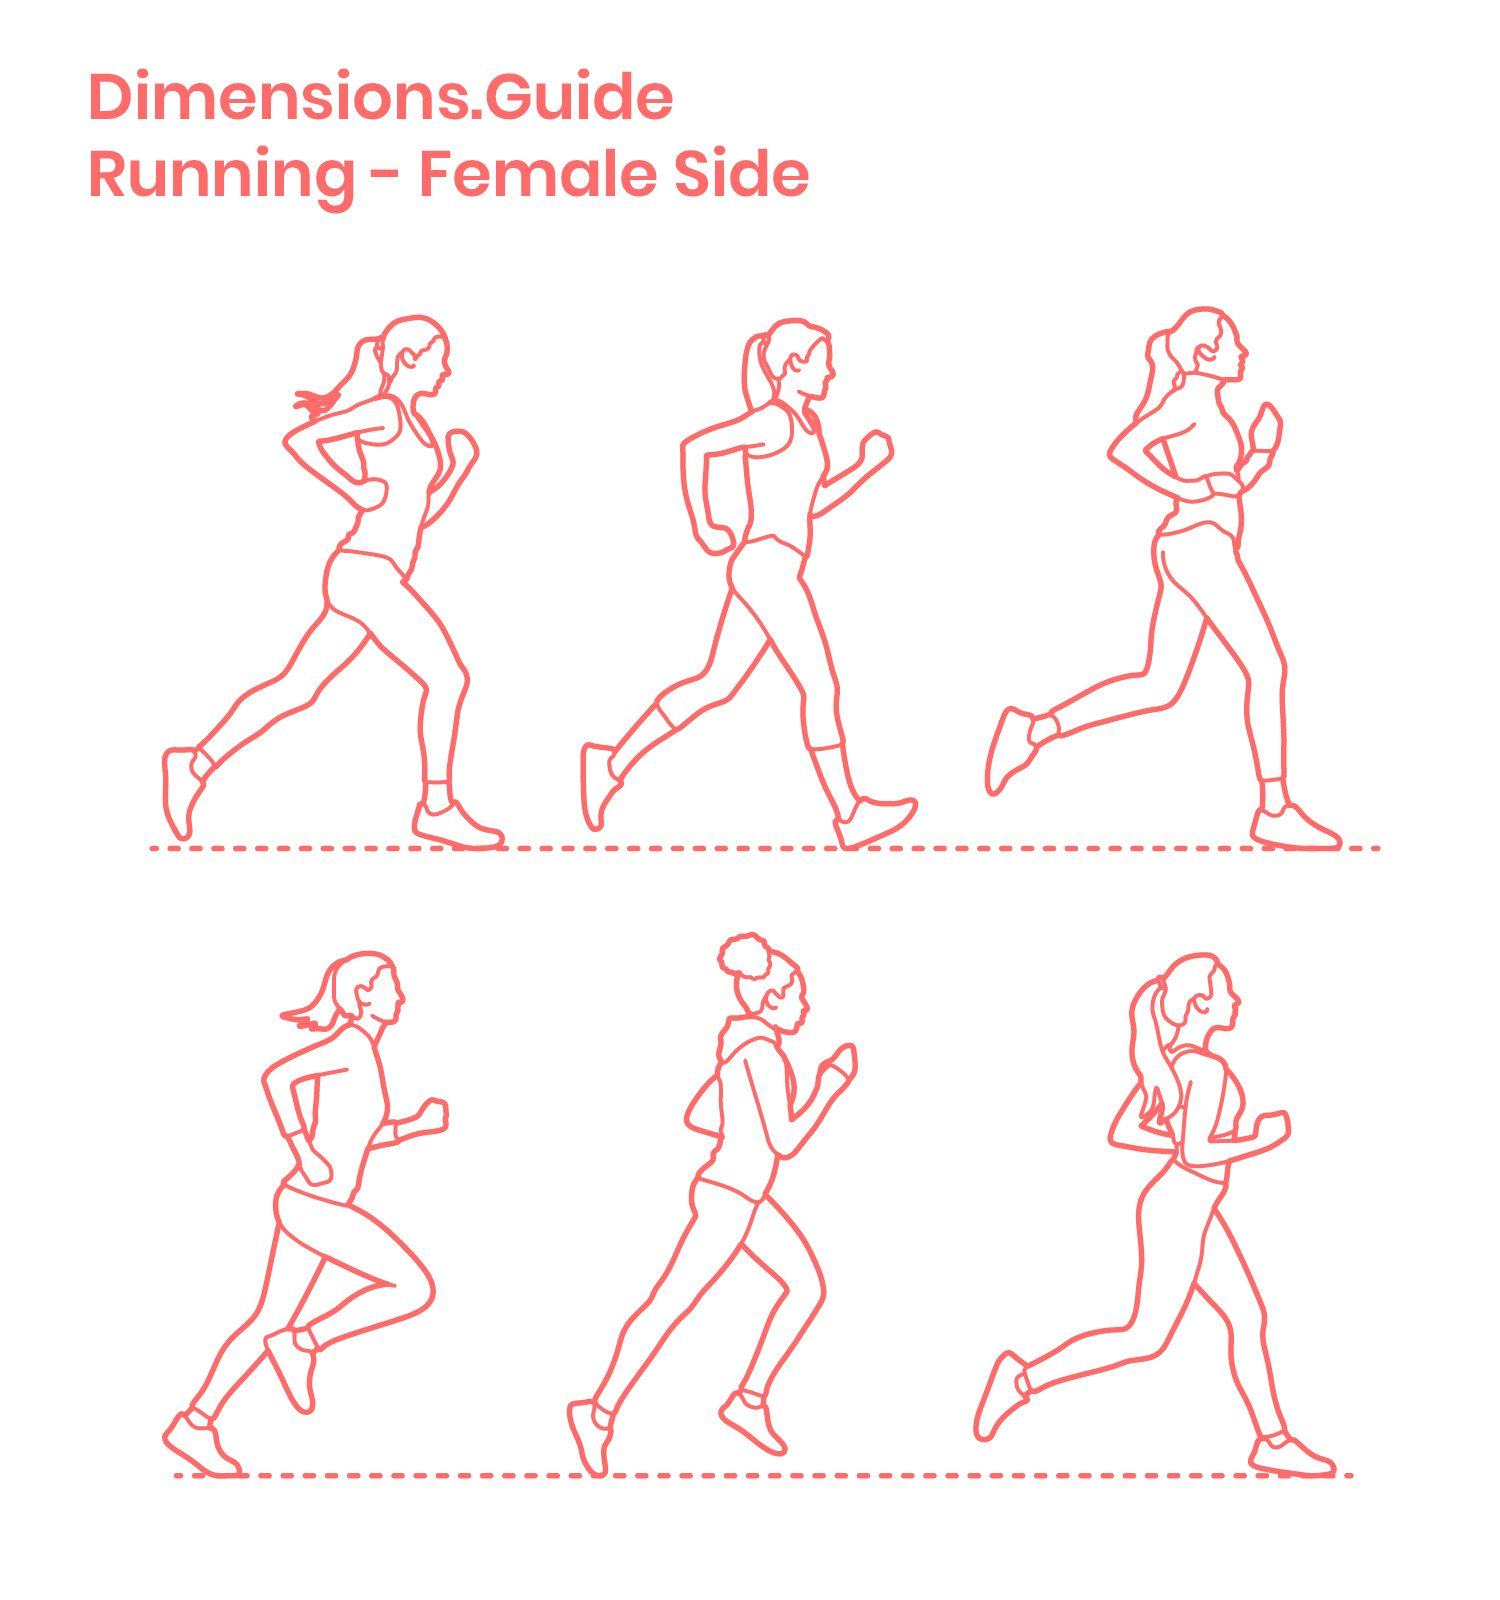 Running Side Female Running Illustration Human Figure Sketches Silhouette Drawing